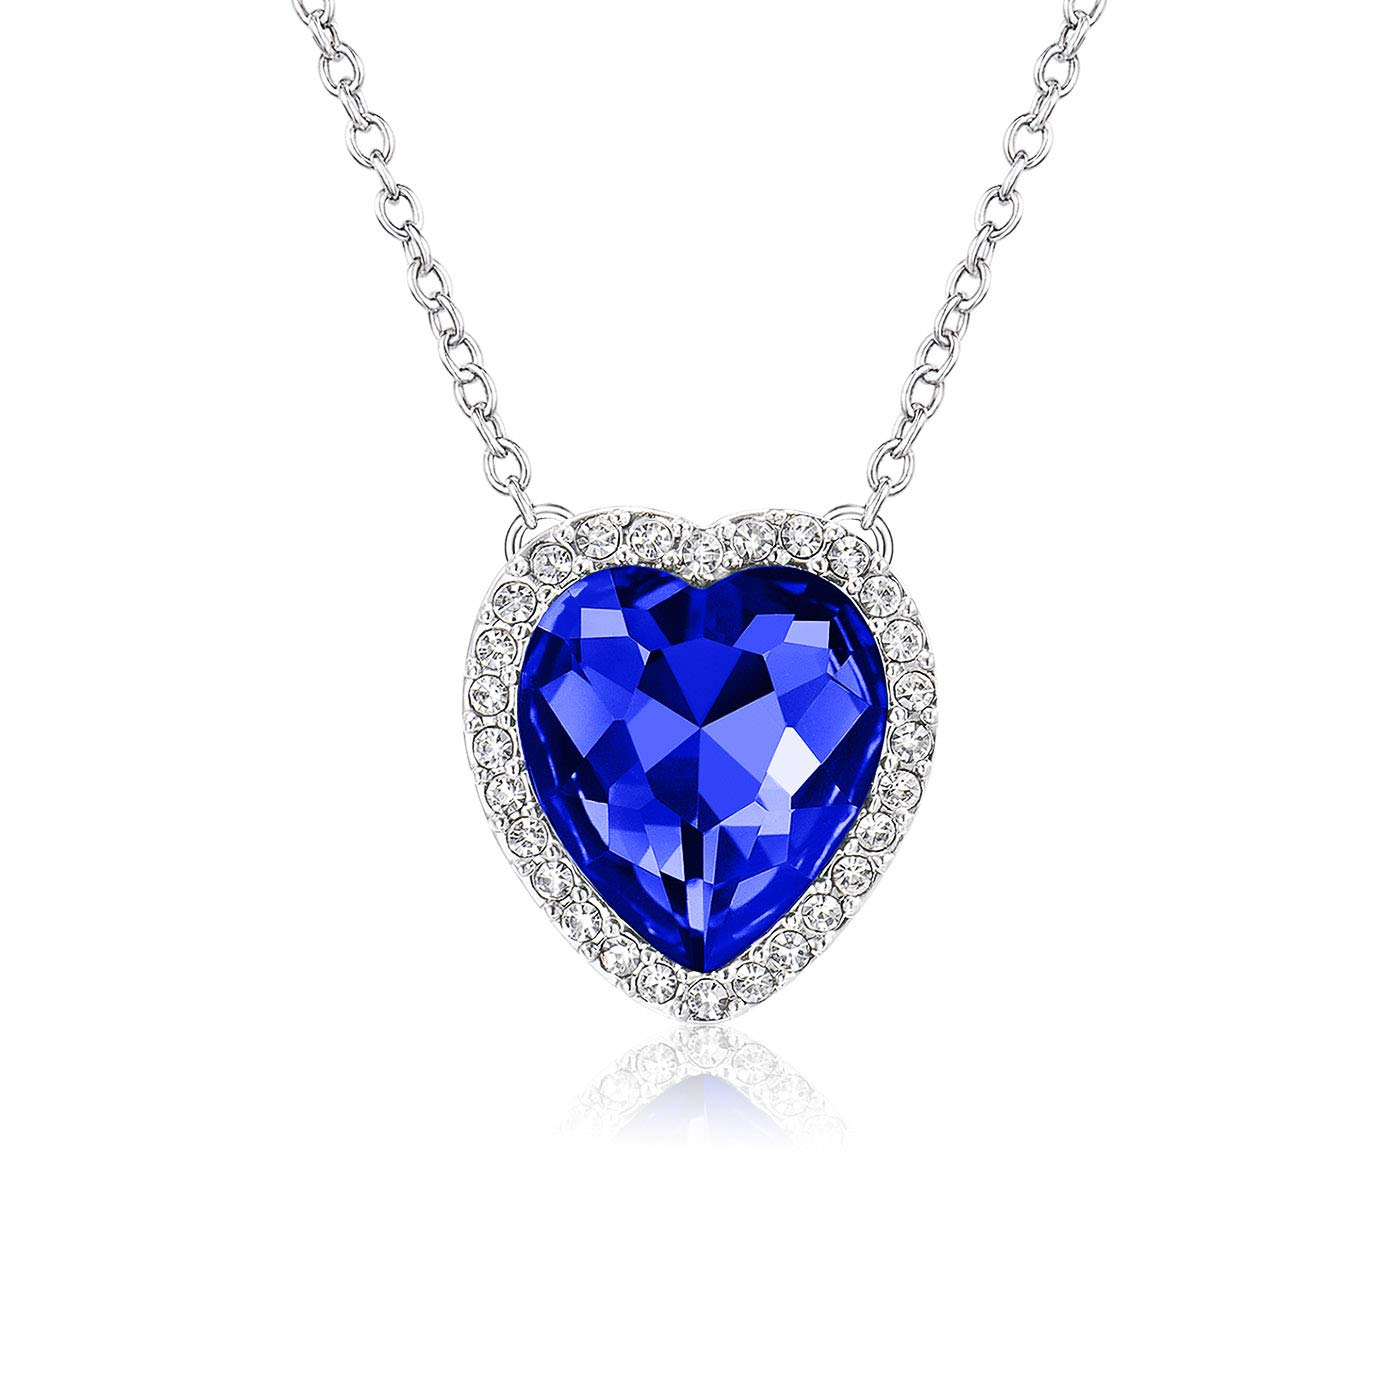 Beyond Love Sapphire September Birthstone Necklace Blue Heart Jewelry Gifts for Women and Girls